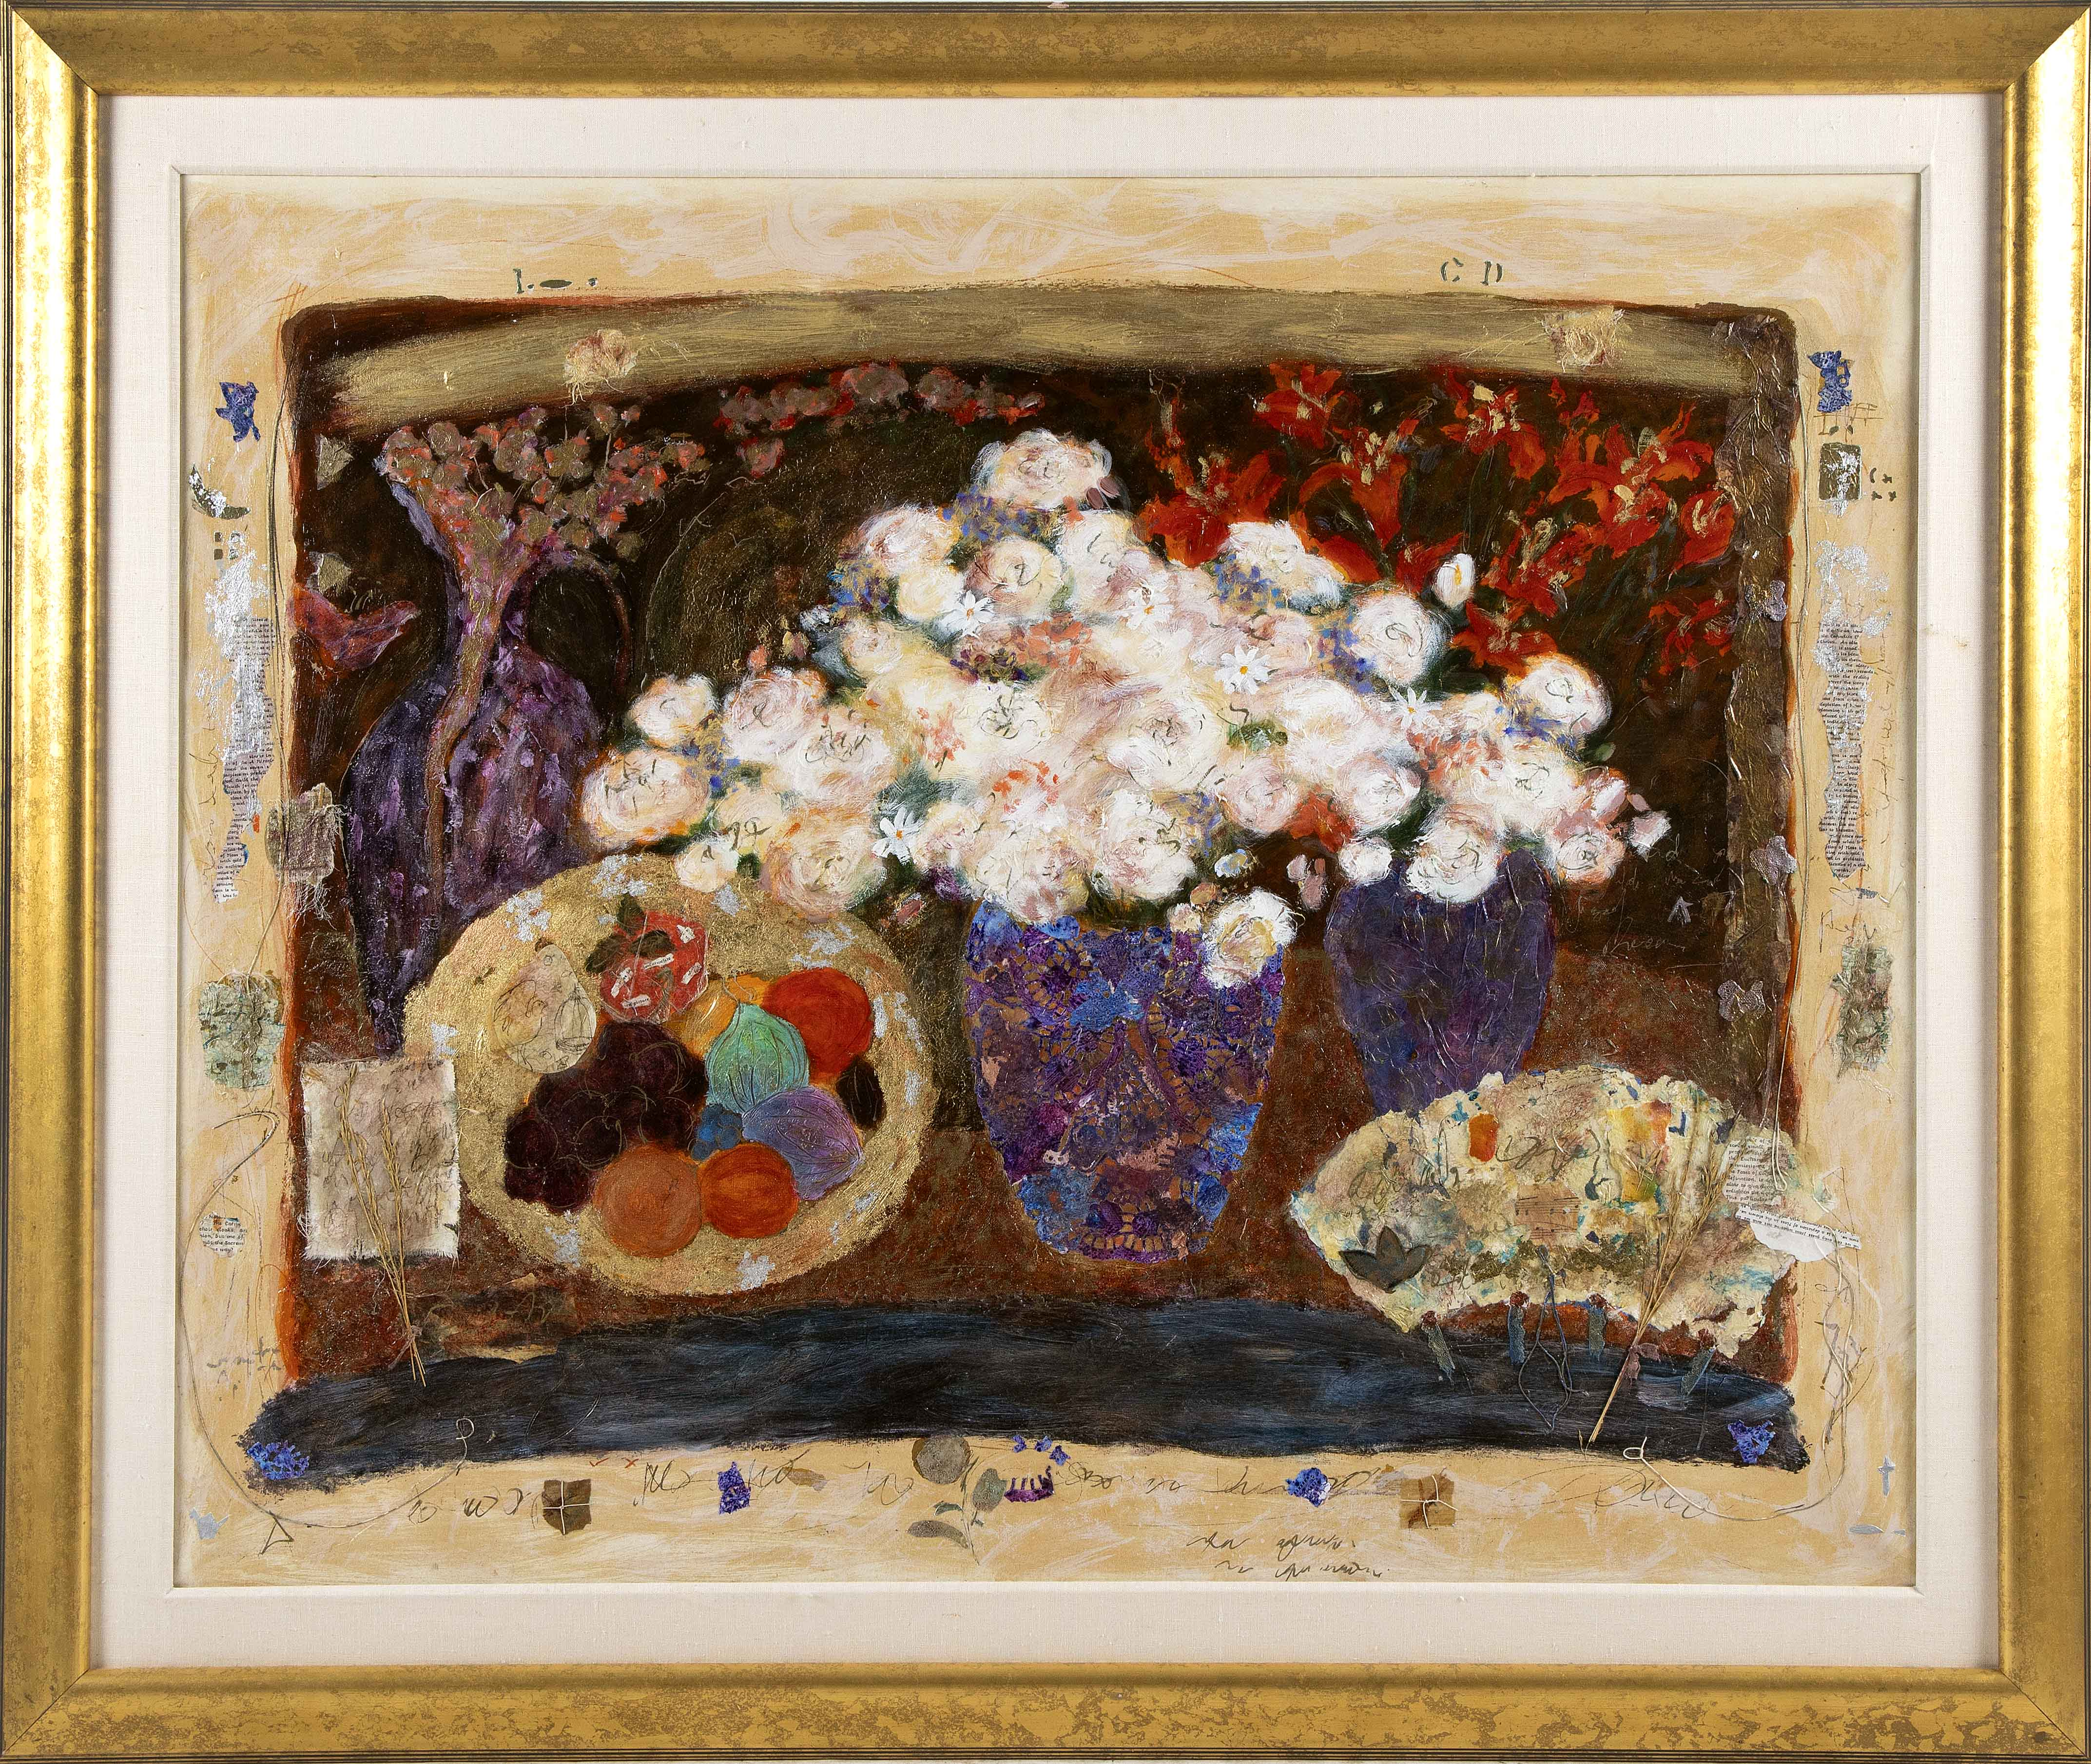 "ROY FAIRCHILD-WOODWARD (United Kingdom, Born 1953), Mixed media collage still life on canvas., 33"" x 41"". Framed 41"" x 49""."